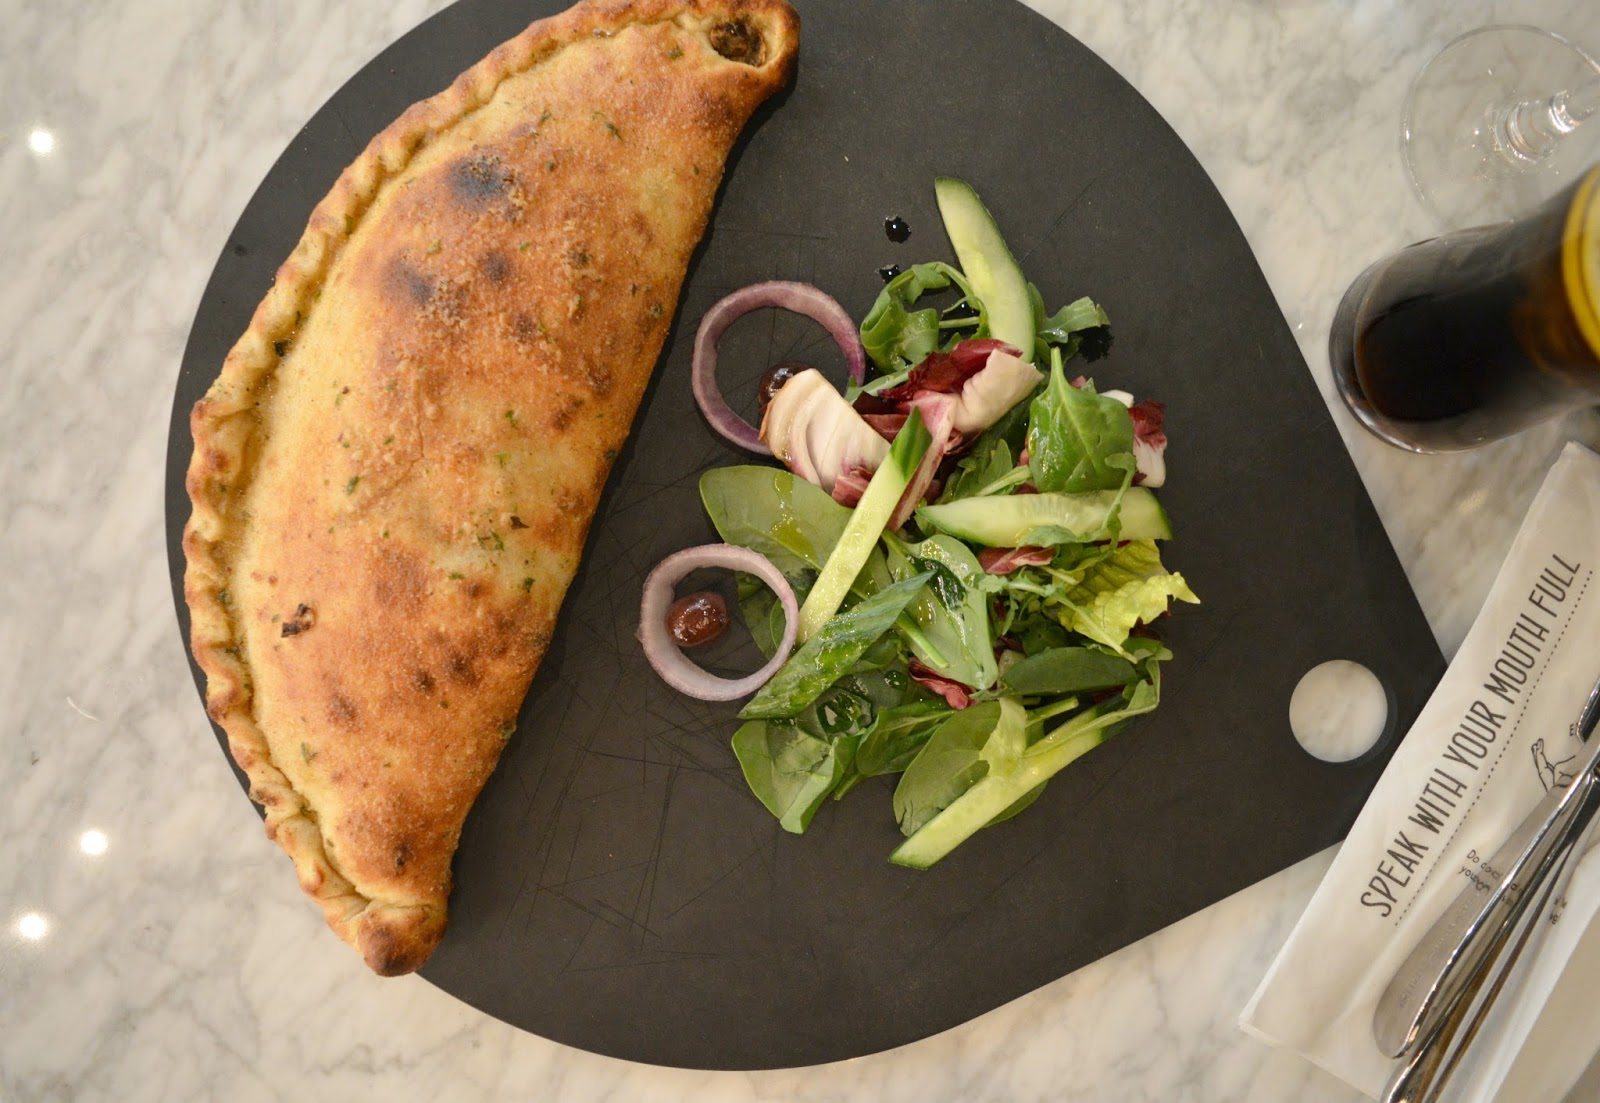 Intu Eldon Square: Grey's Quarter - ASK Italian Calzone